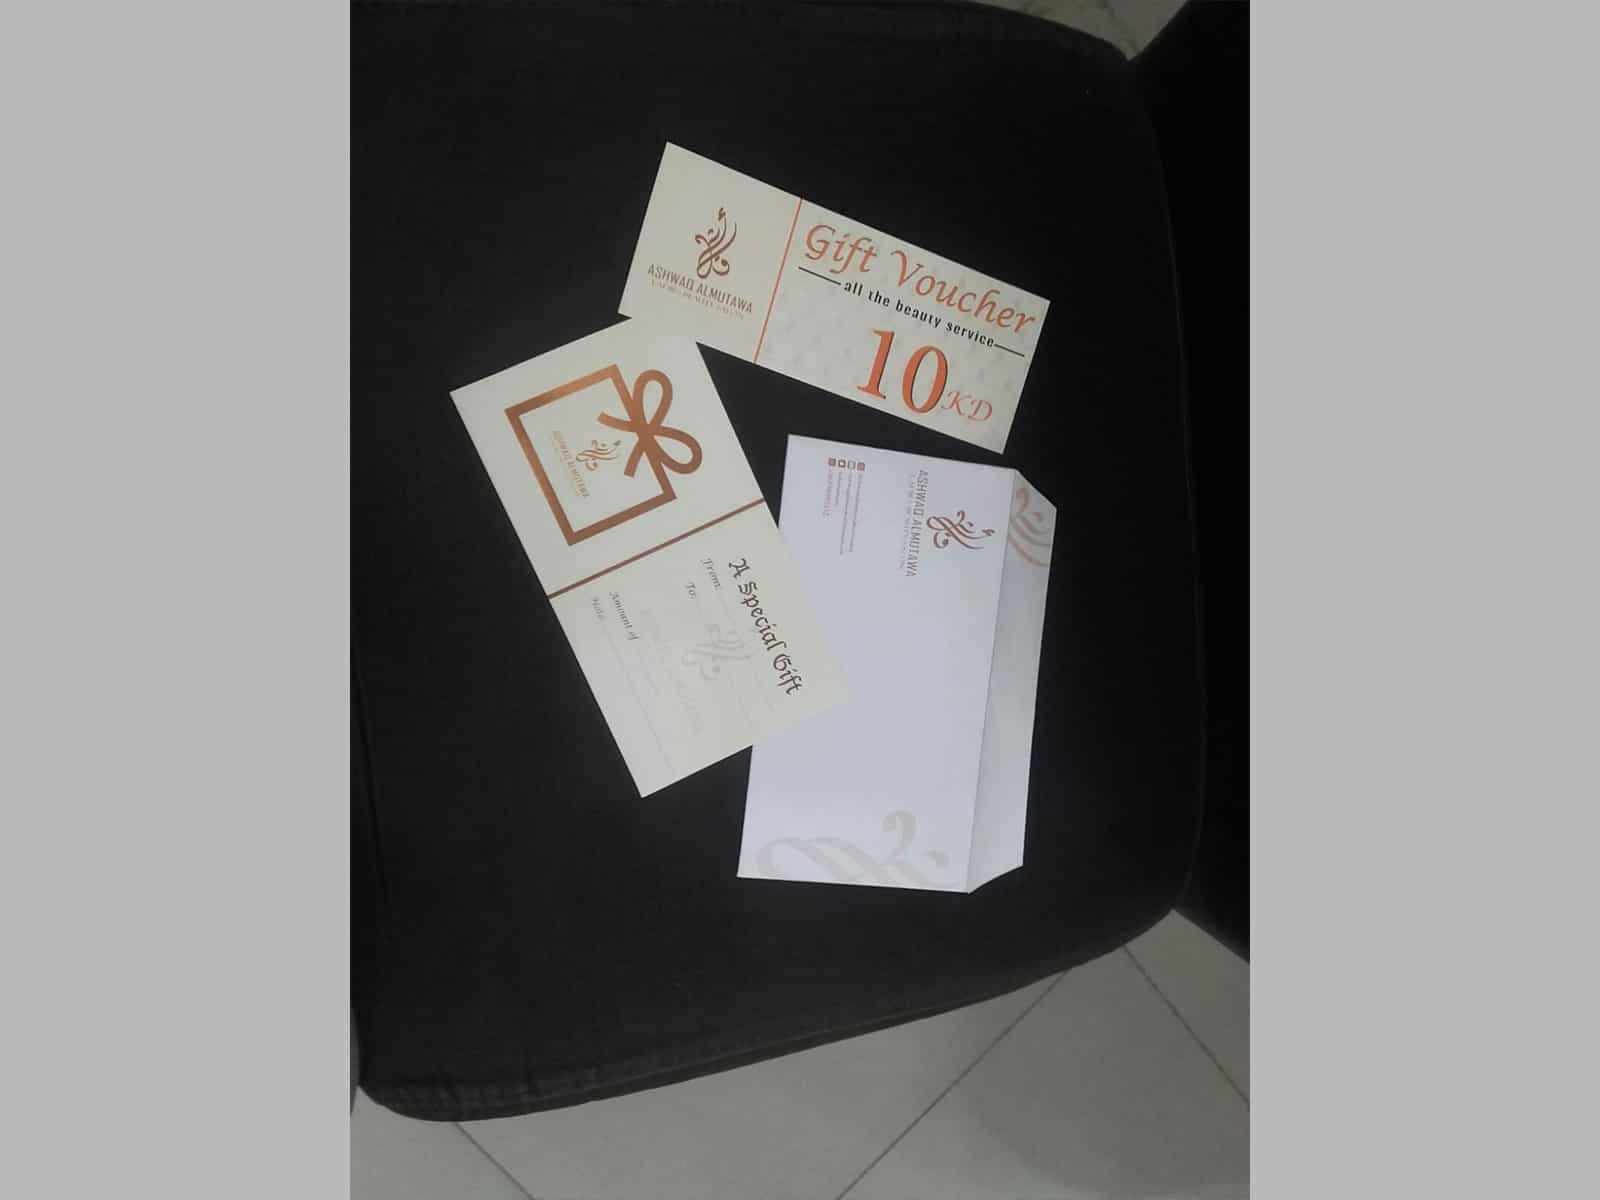 Gift voucher printed by Inkservice